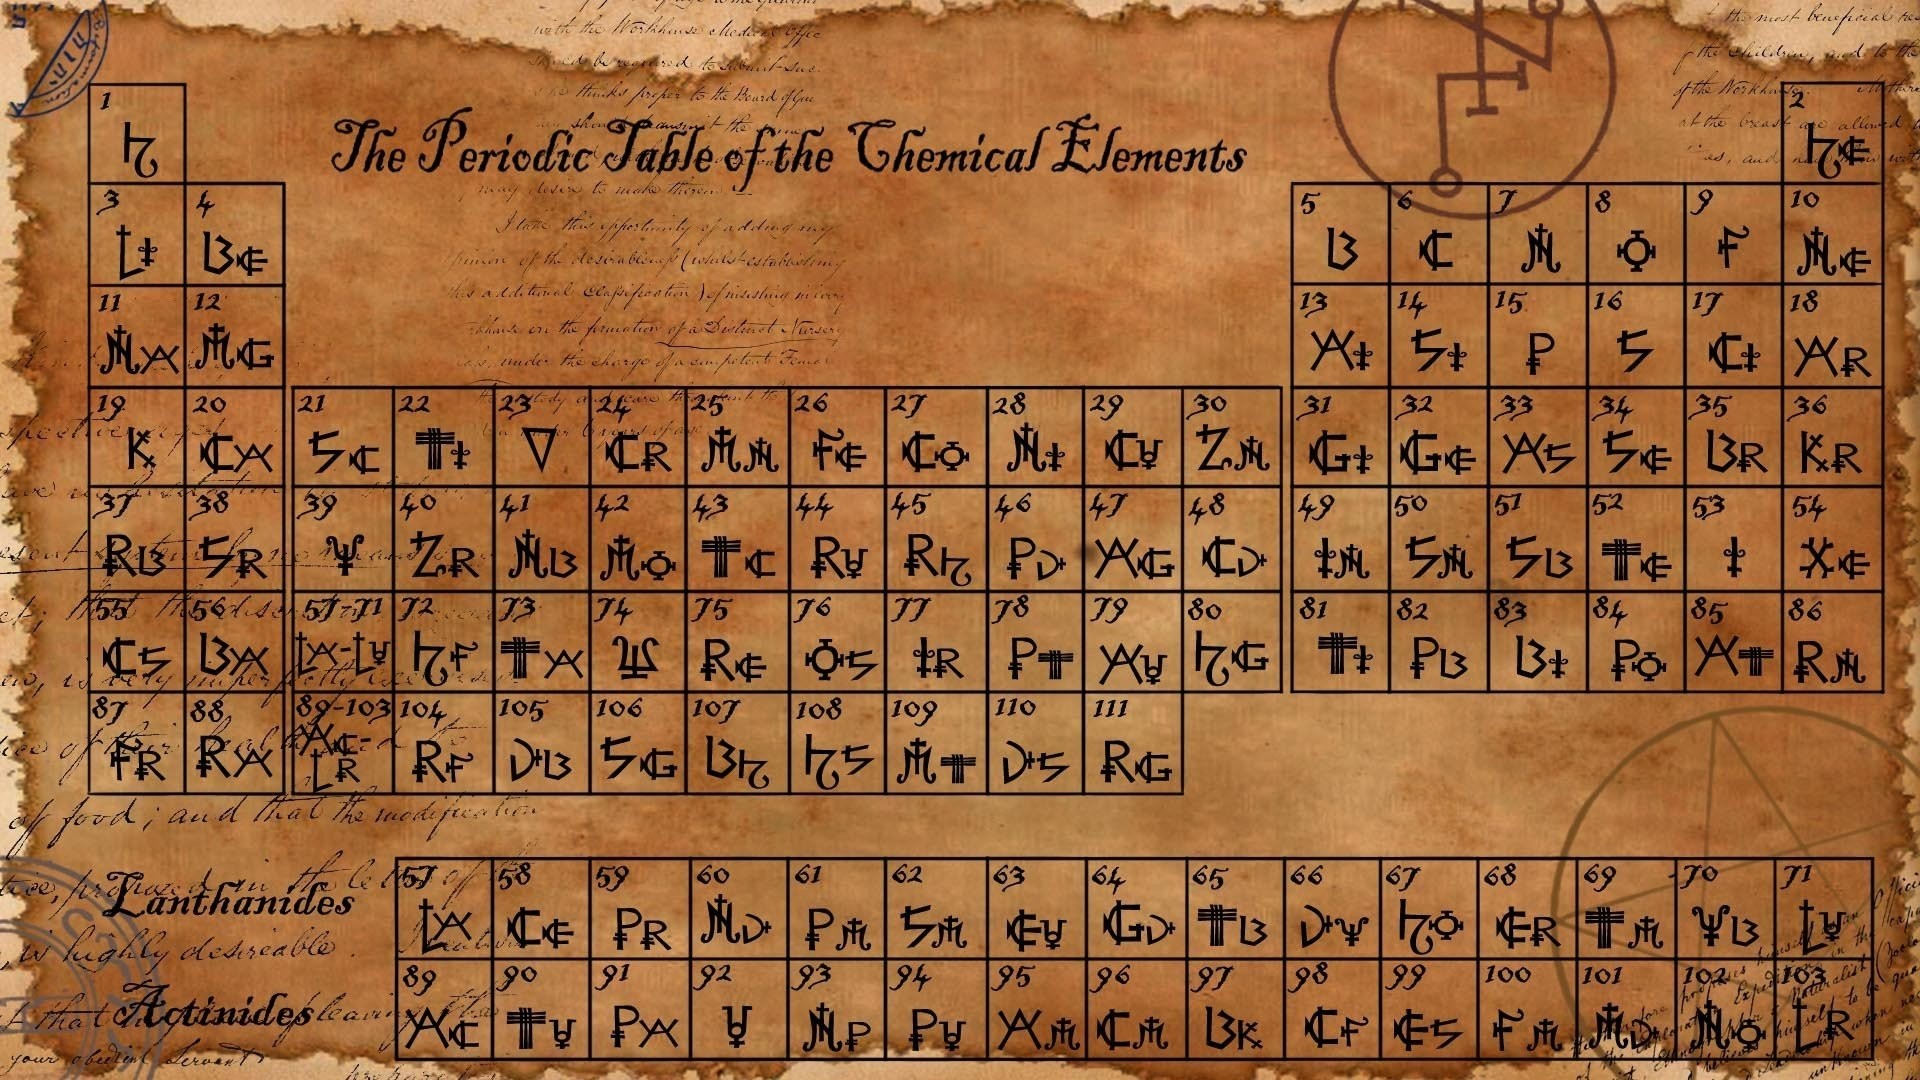 recurring table of elements elements chemistry vintage sheet